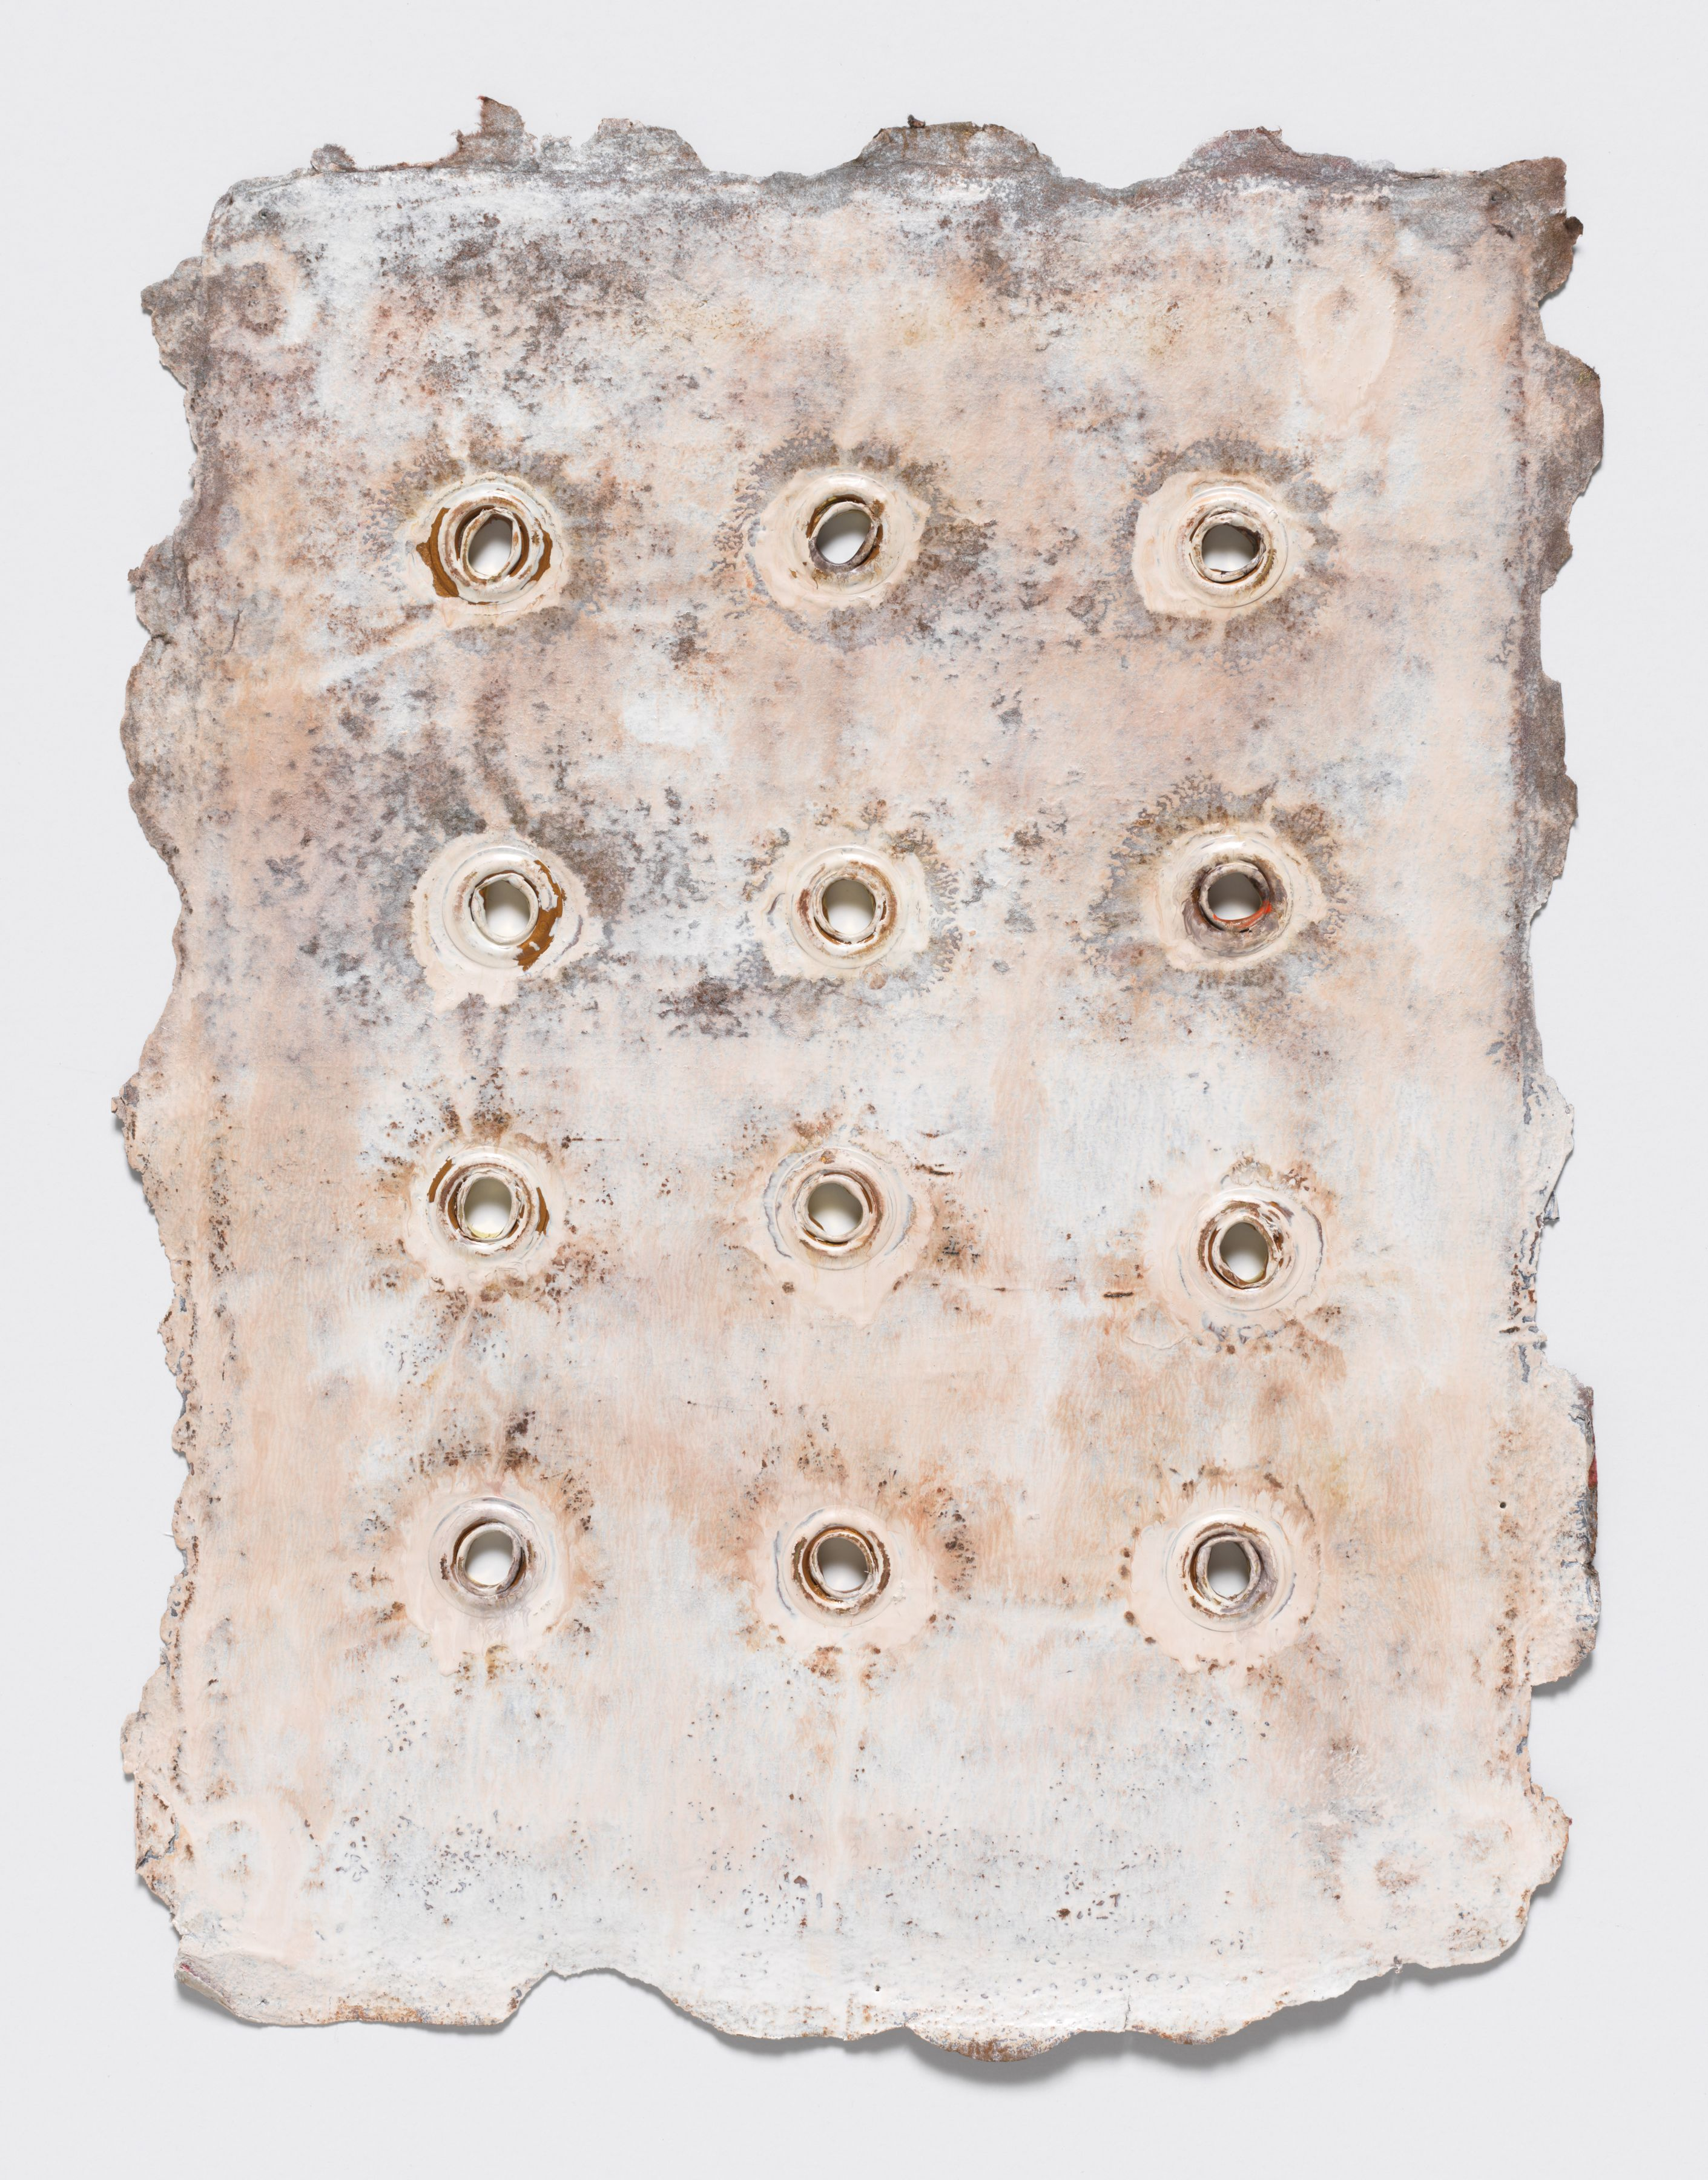 Grommetype #26, 2017, Monotype printed over grommeted Venice Watercolor #4 (2006) on Twinrocker paper